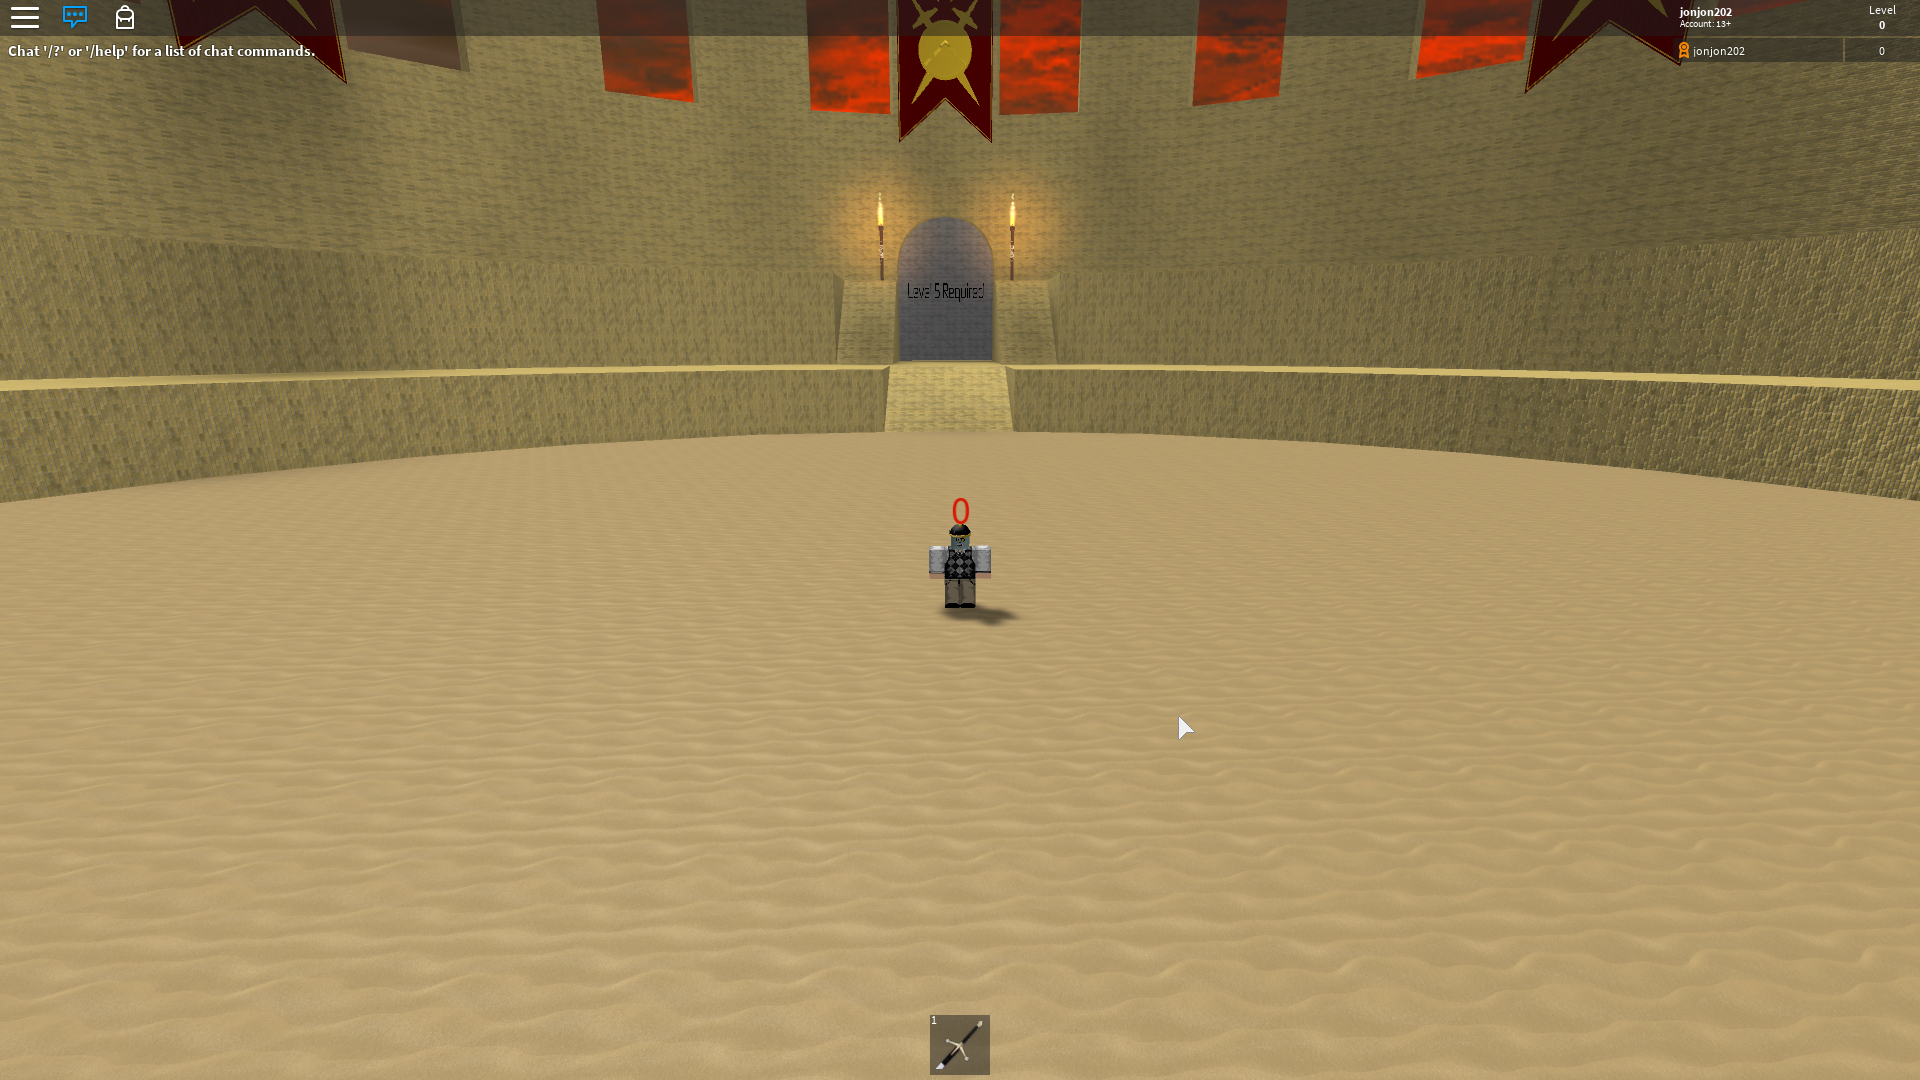 Easy Way To Make My Game Look Better Building Support Roblox